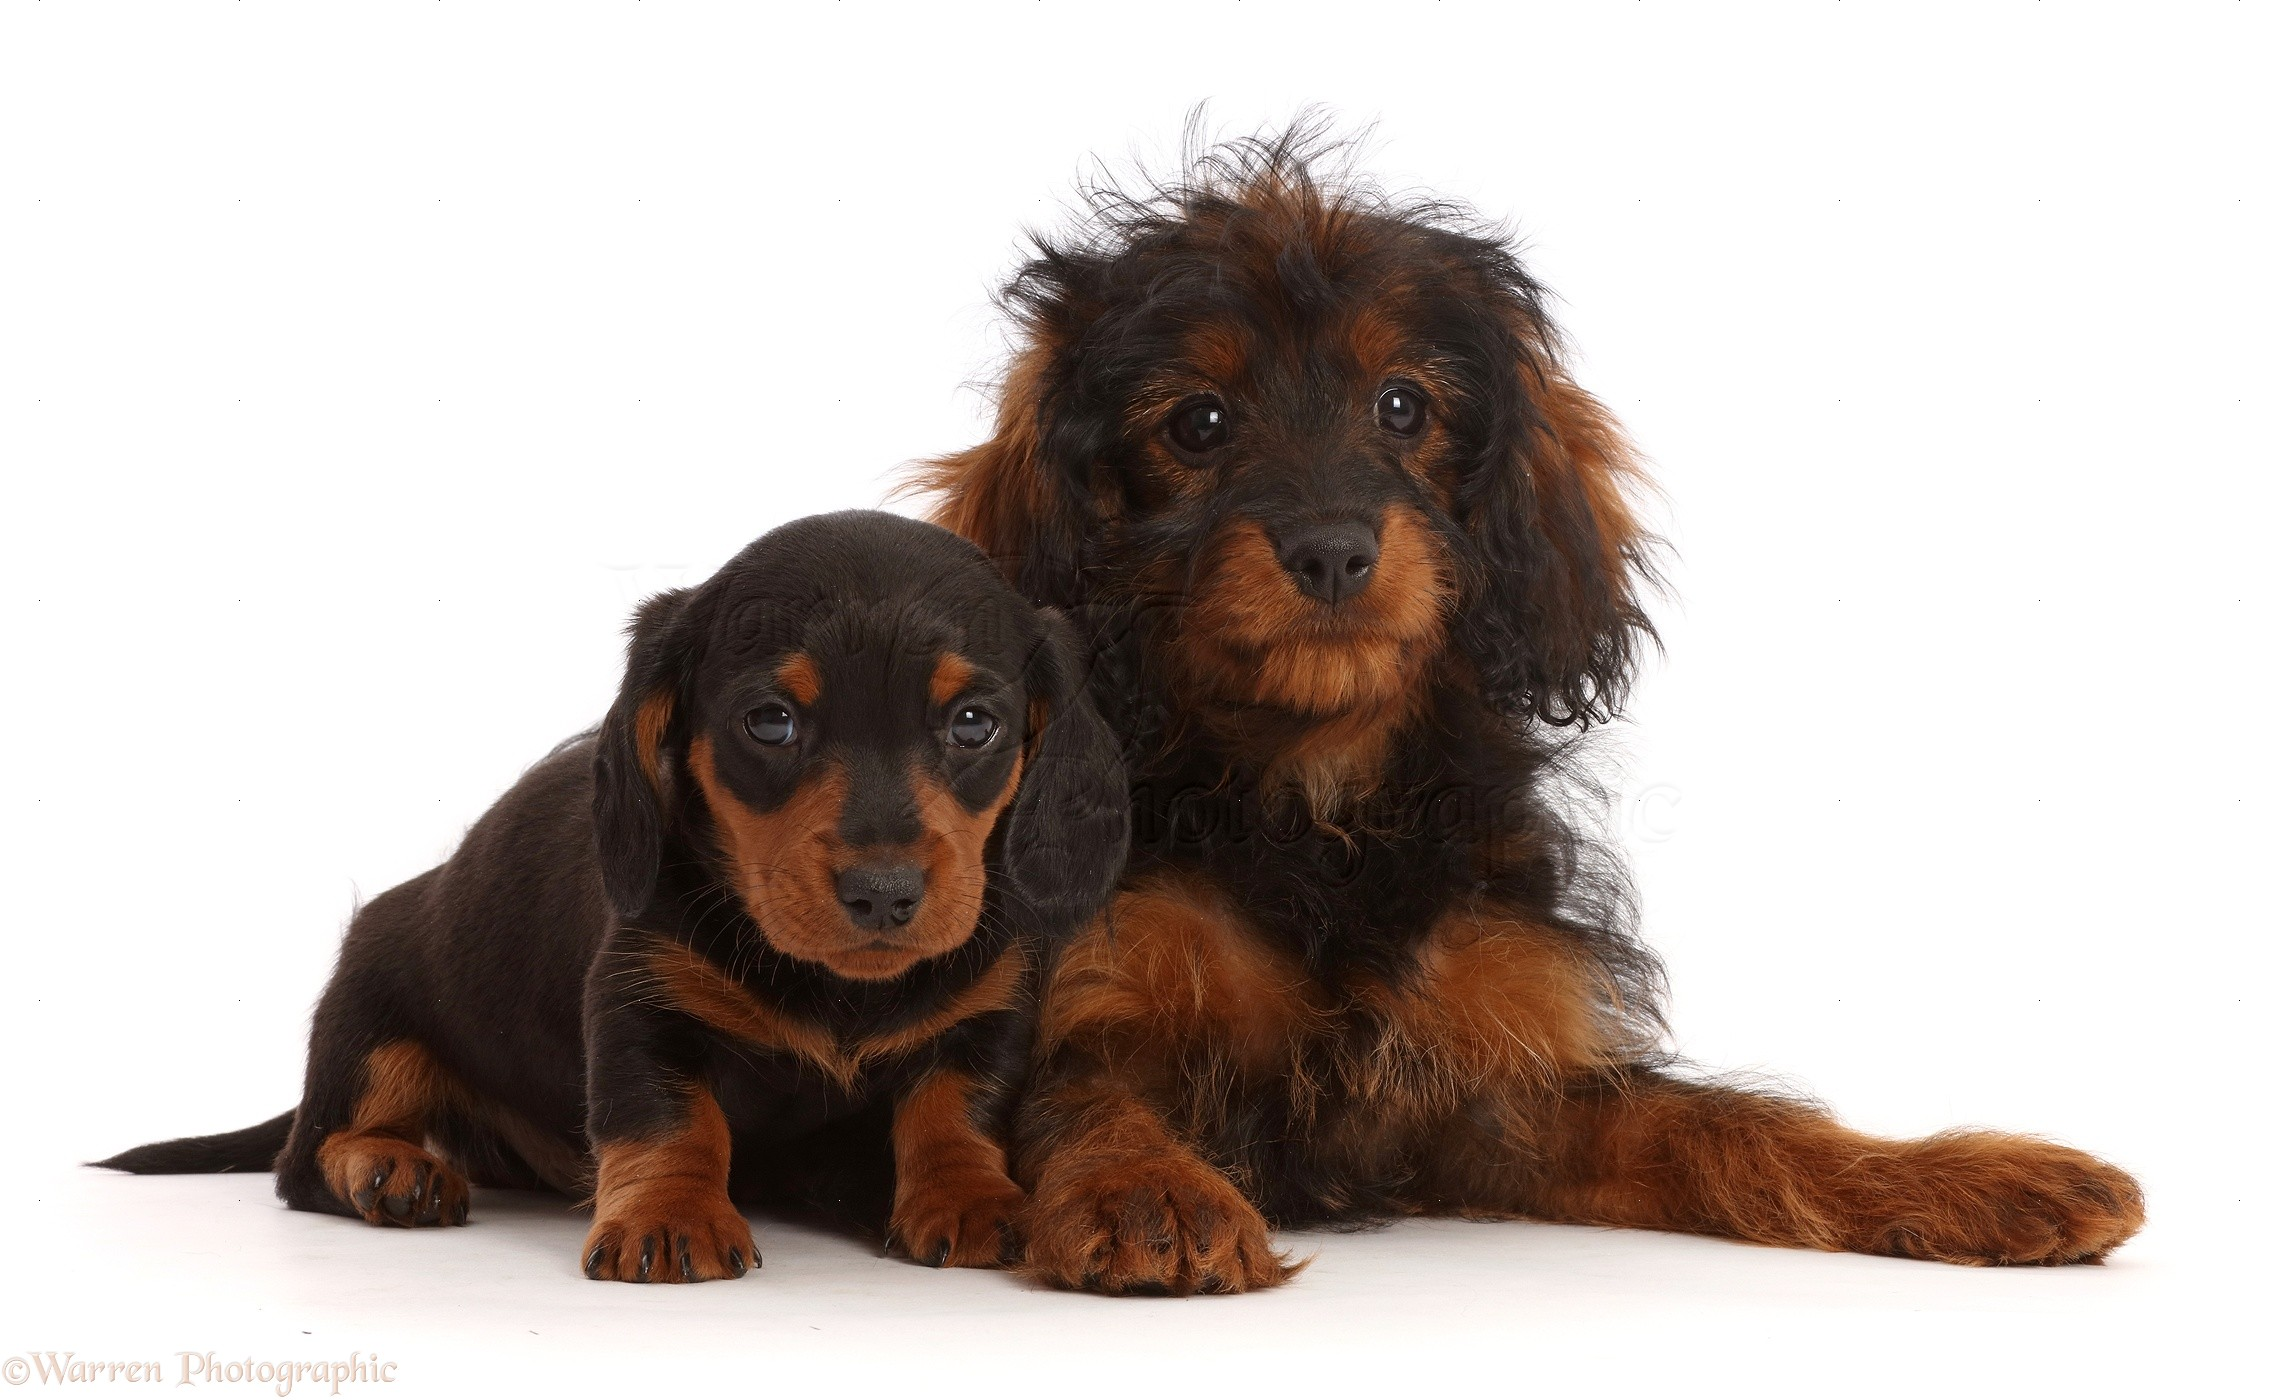 Dogs Black And Tan Dachshund Puppy And Cavapoo Puppy Photo Wp47118